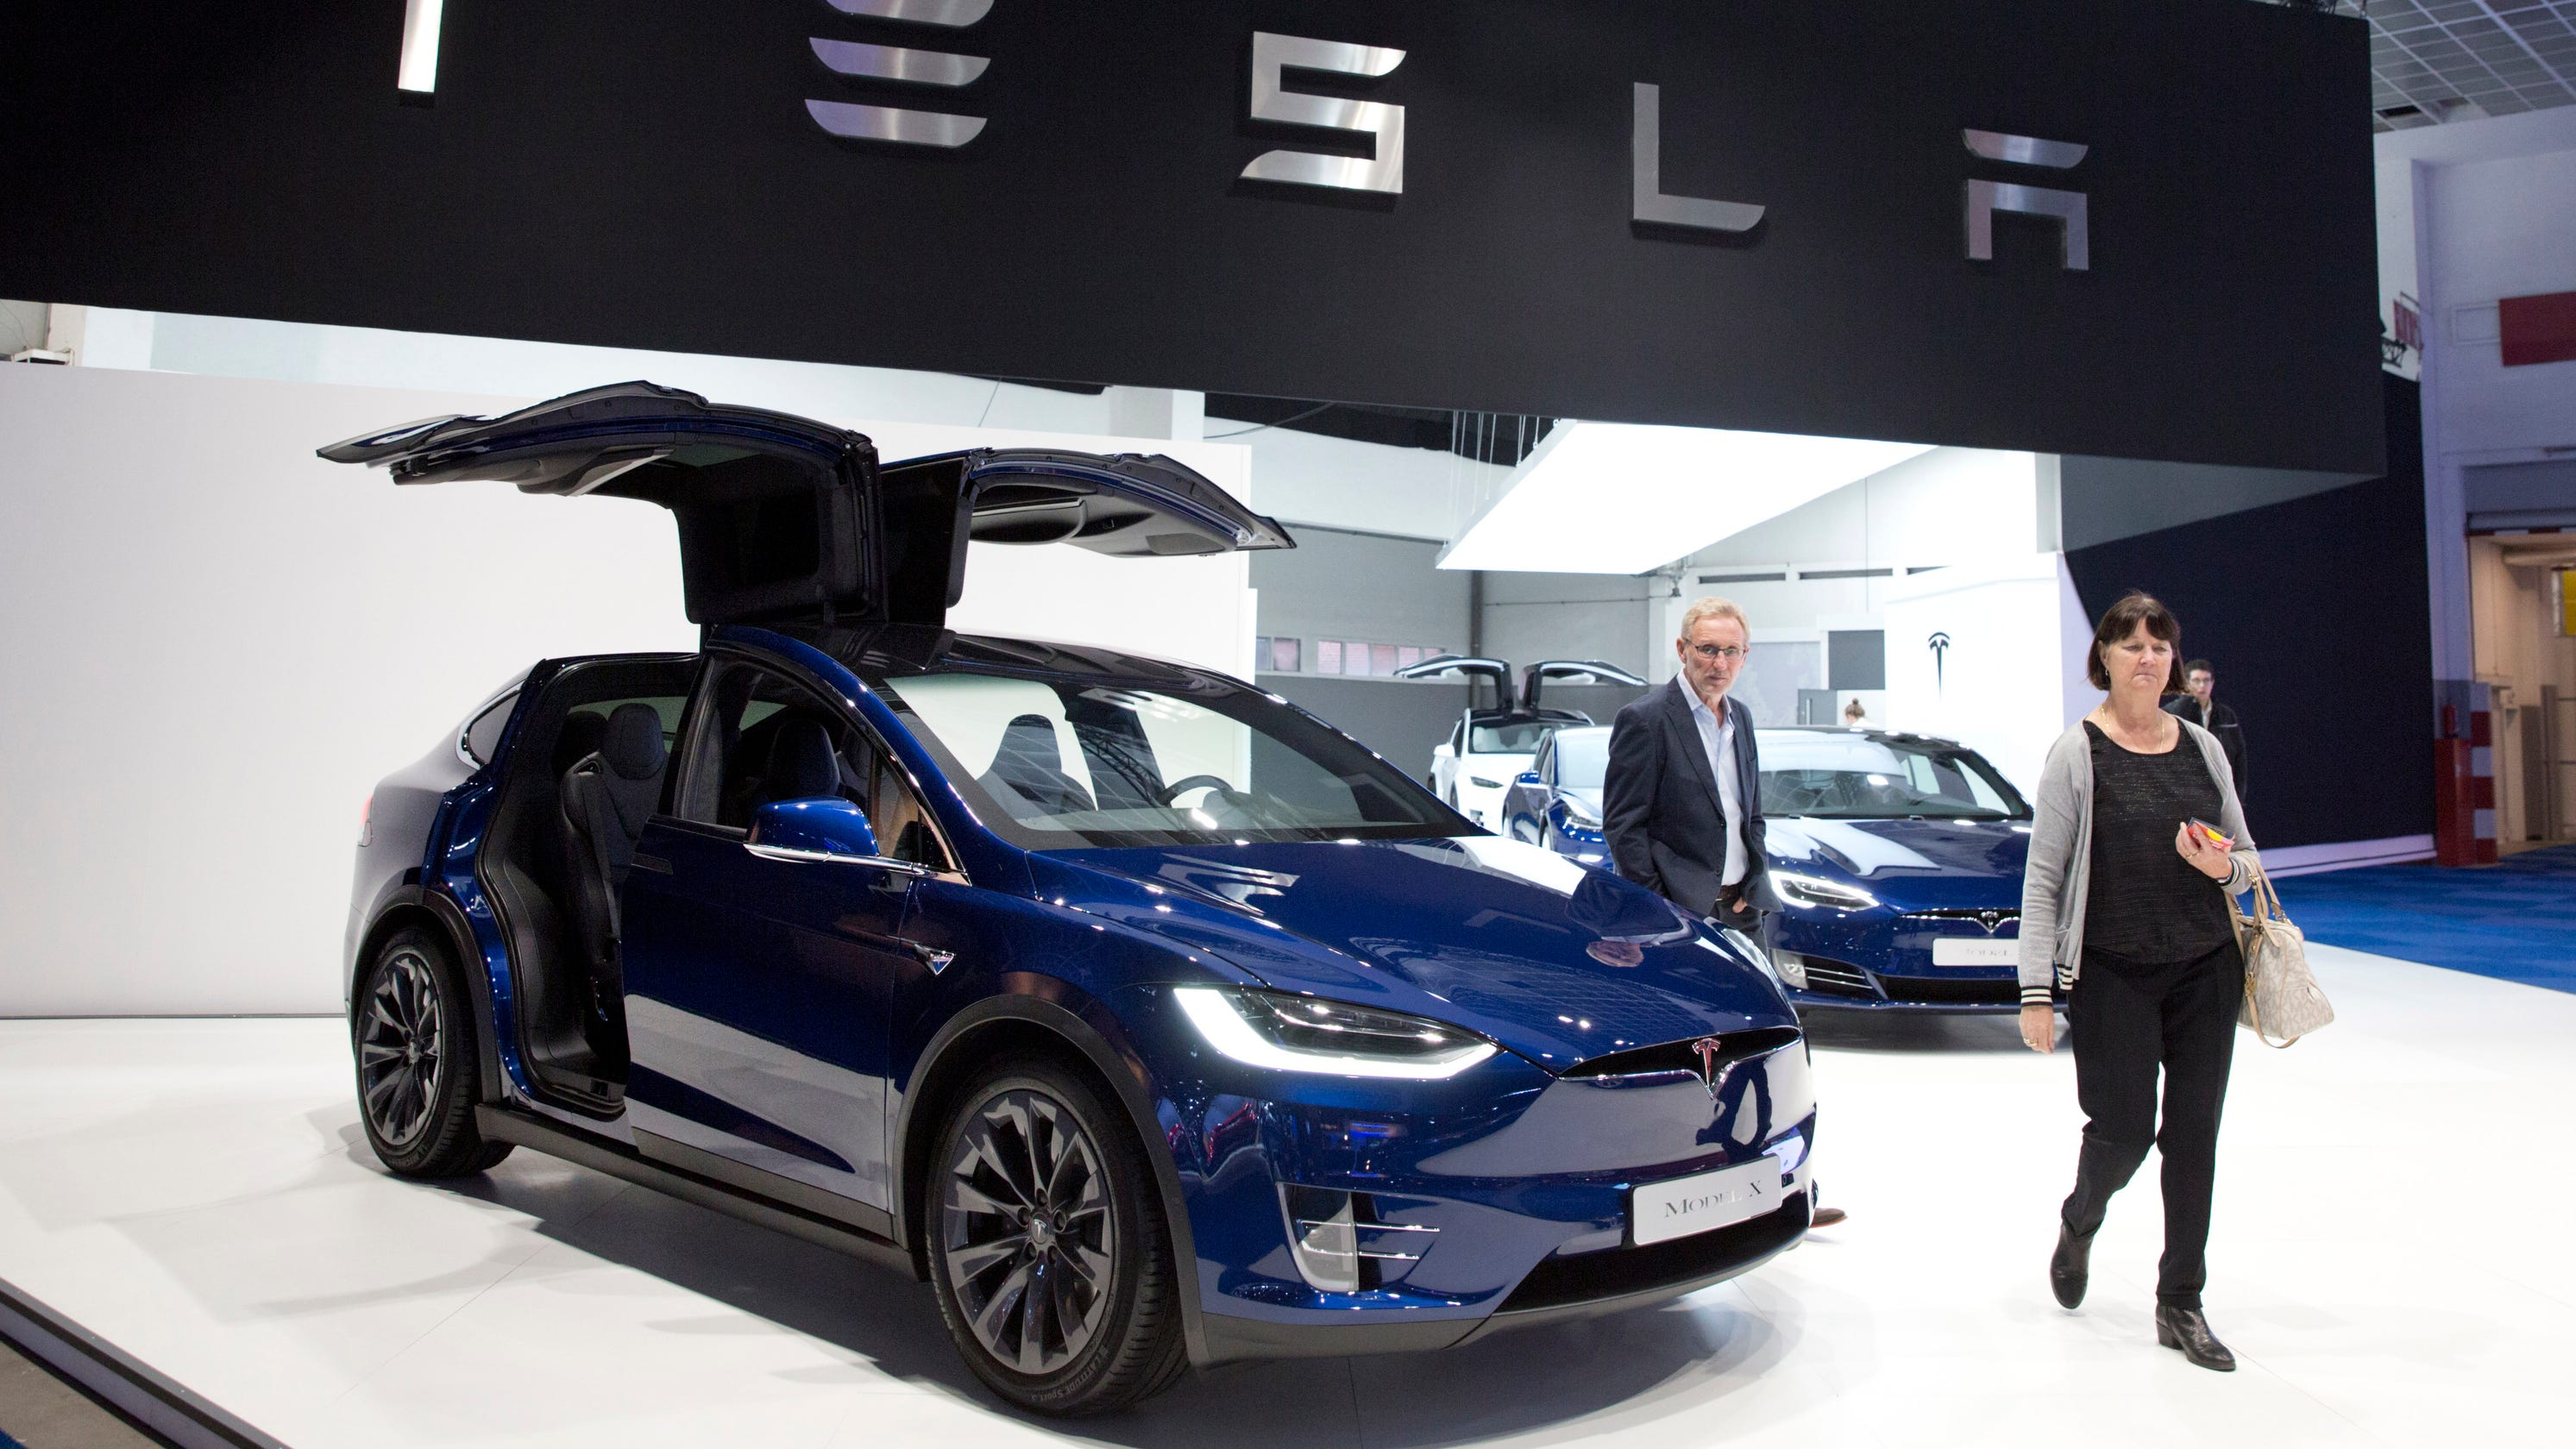 Farts, dogs and stoplight signals: A list of Tesla's updates, modes